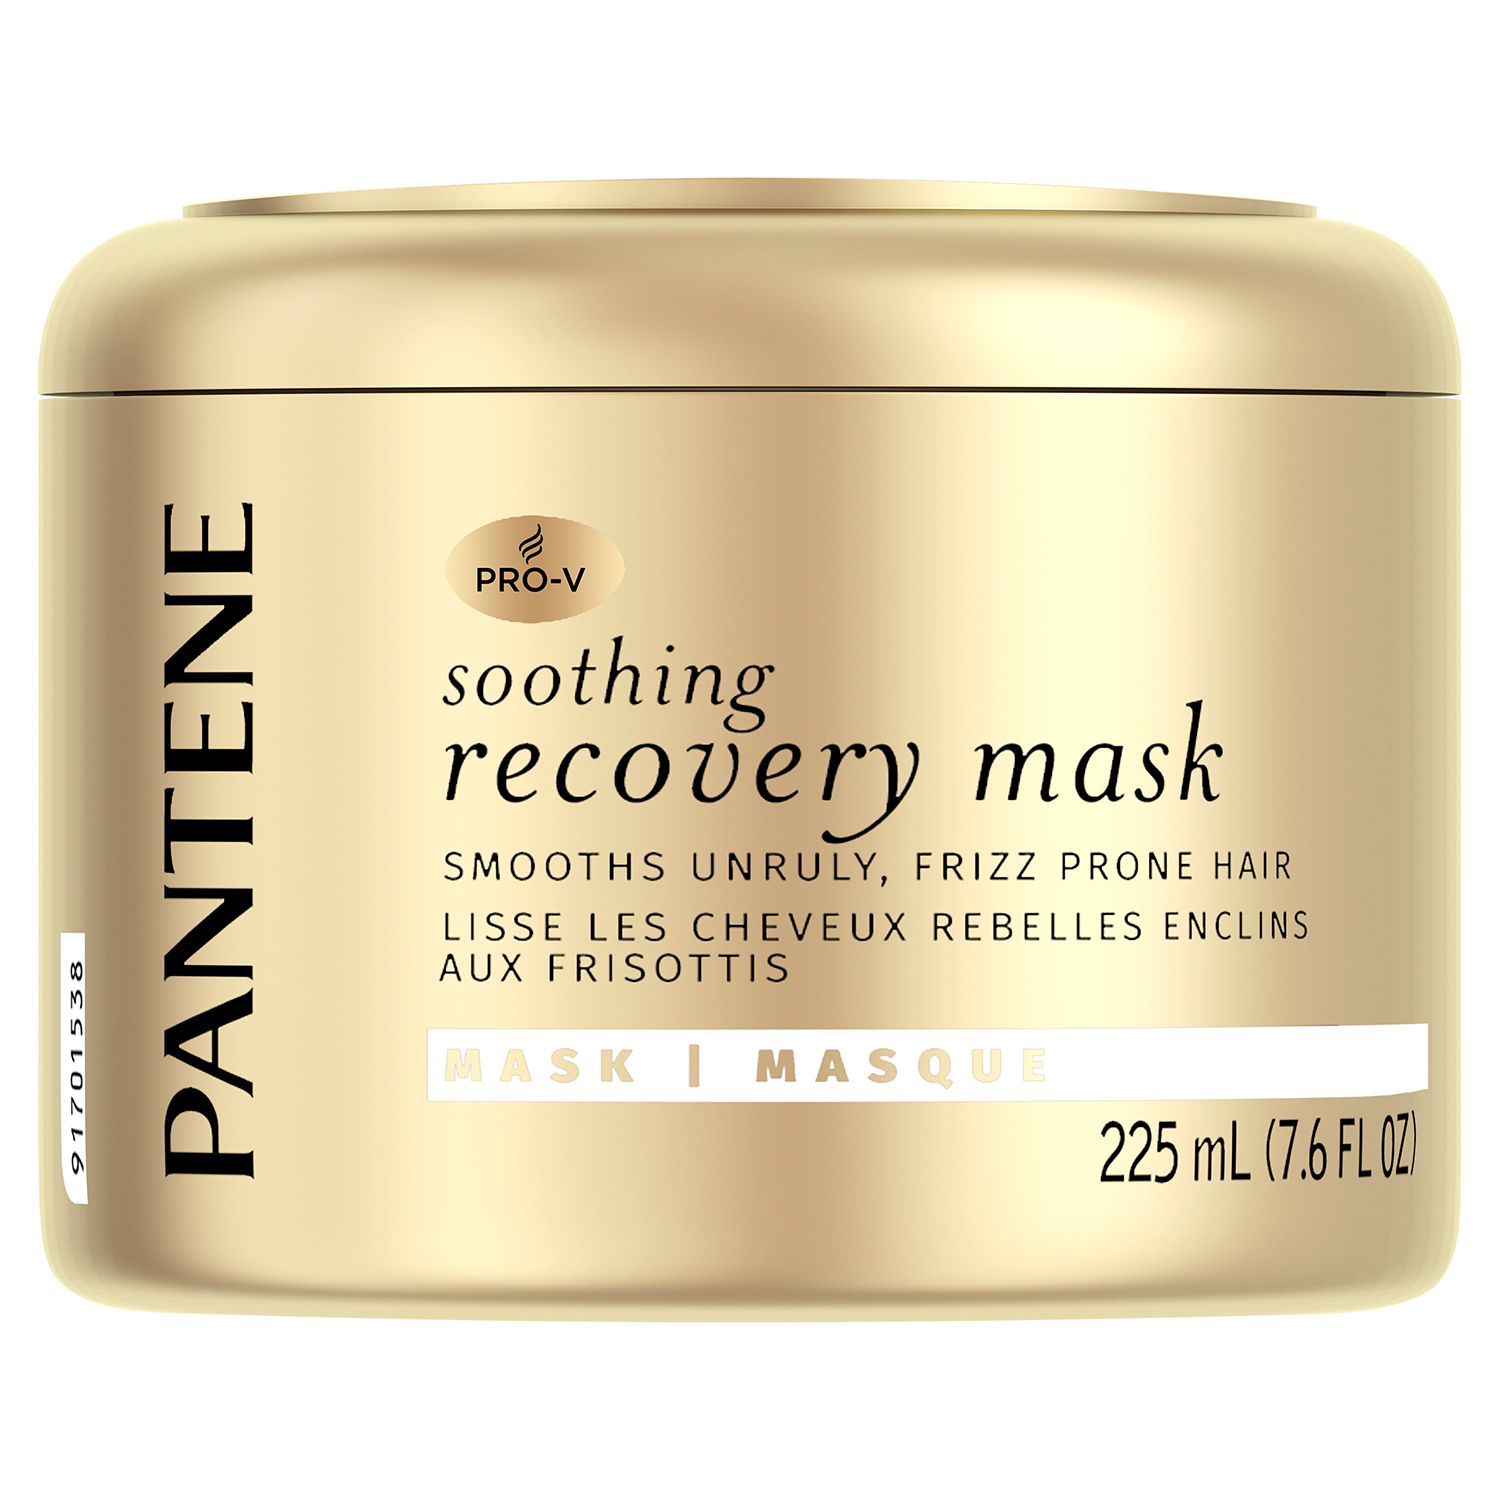 Pantene Pro-V Soothing Recovery Mask for Unruly Frizzy Hair